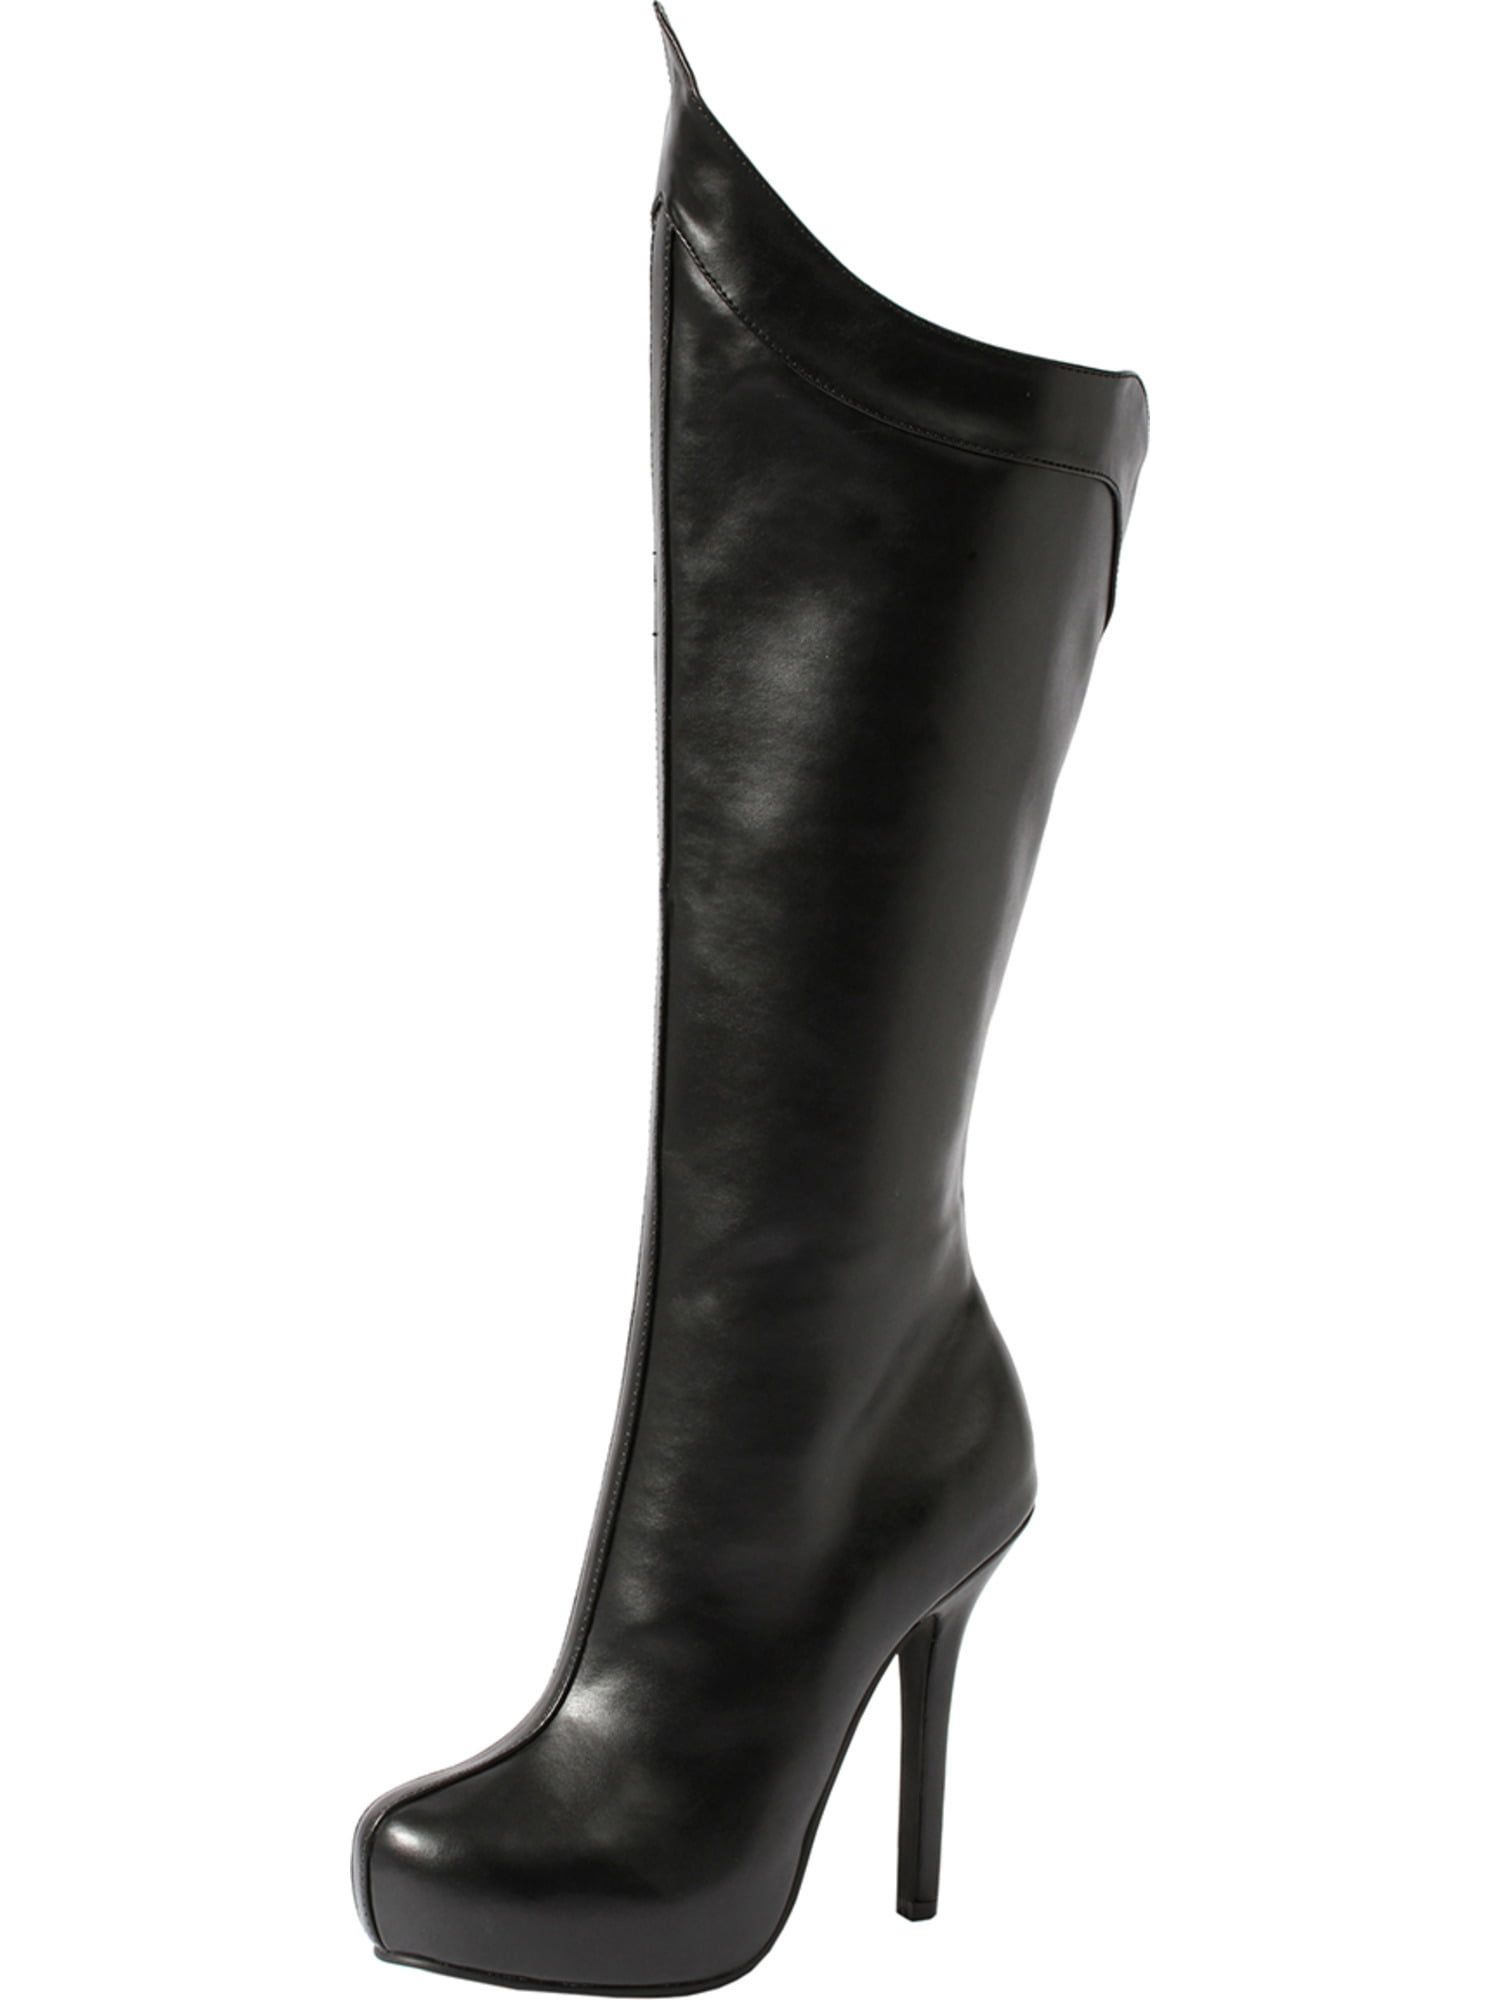 Matte Black High with Heel Knee High Boots with High Peaked Hemline and 5.5 Inch Heels 247480